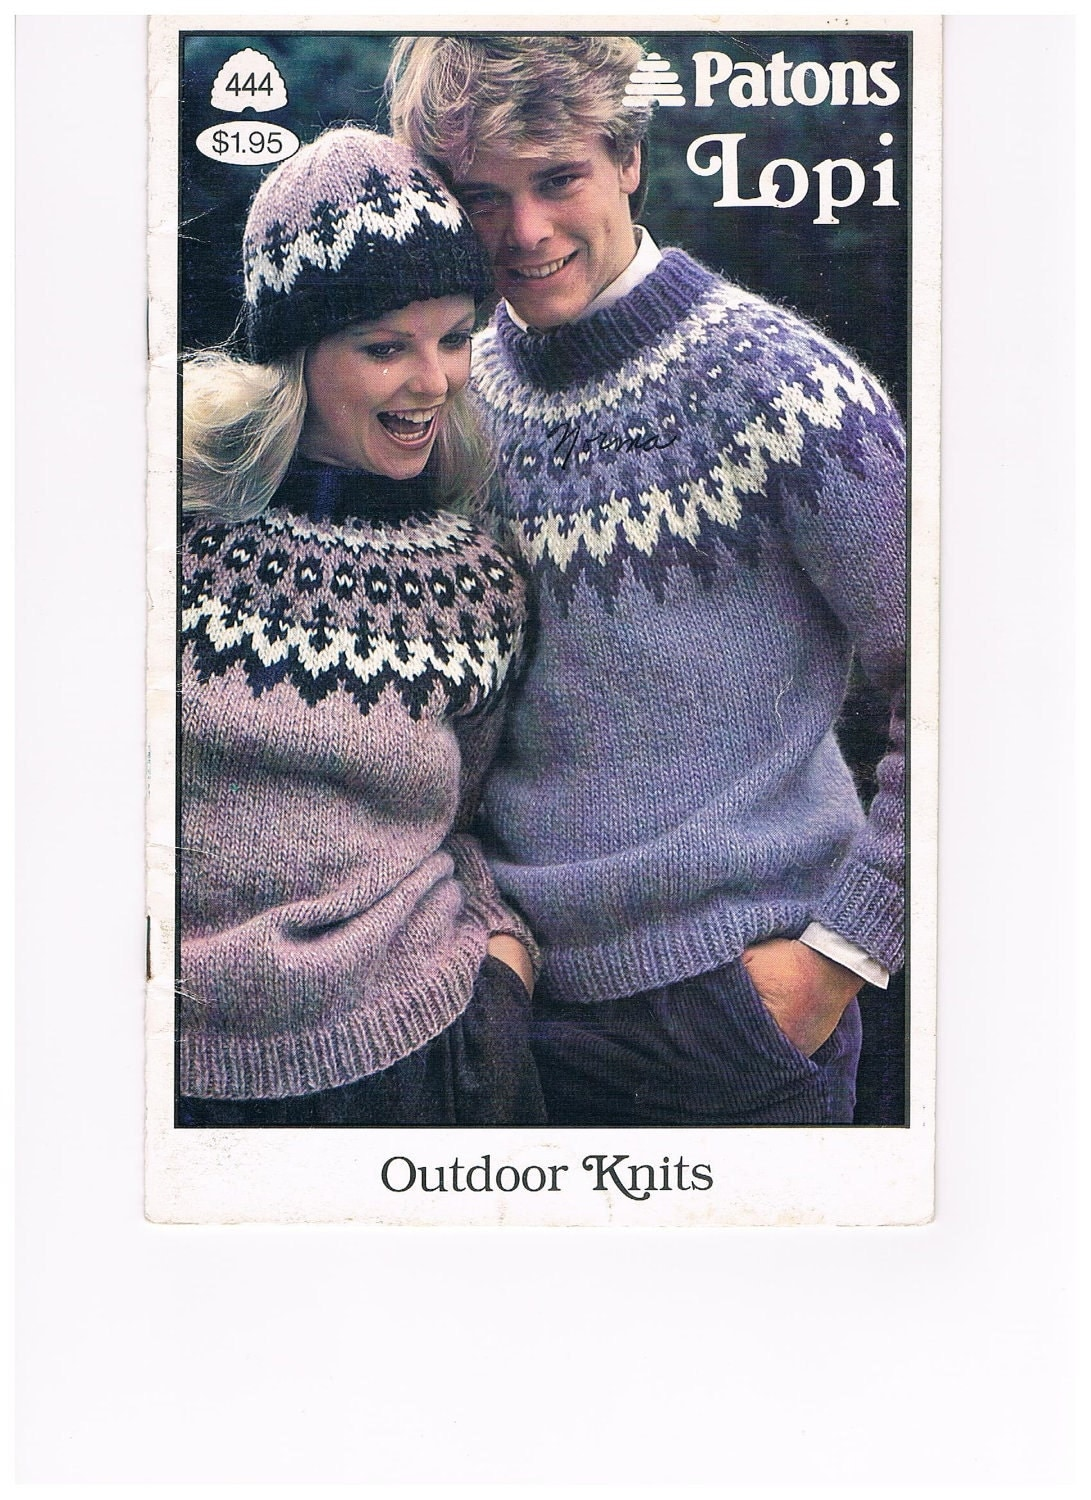 Patons Free Knitting Patterns : Patons Lopi Knitting Pattern Book No. 444 FREE by RegencyCottage